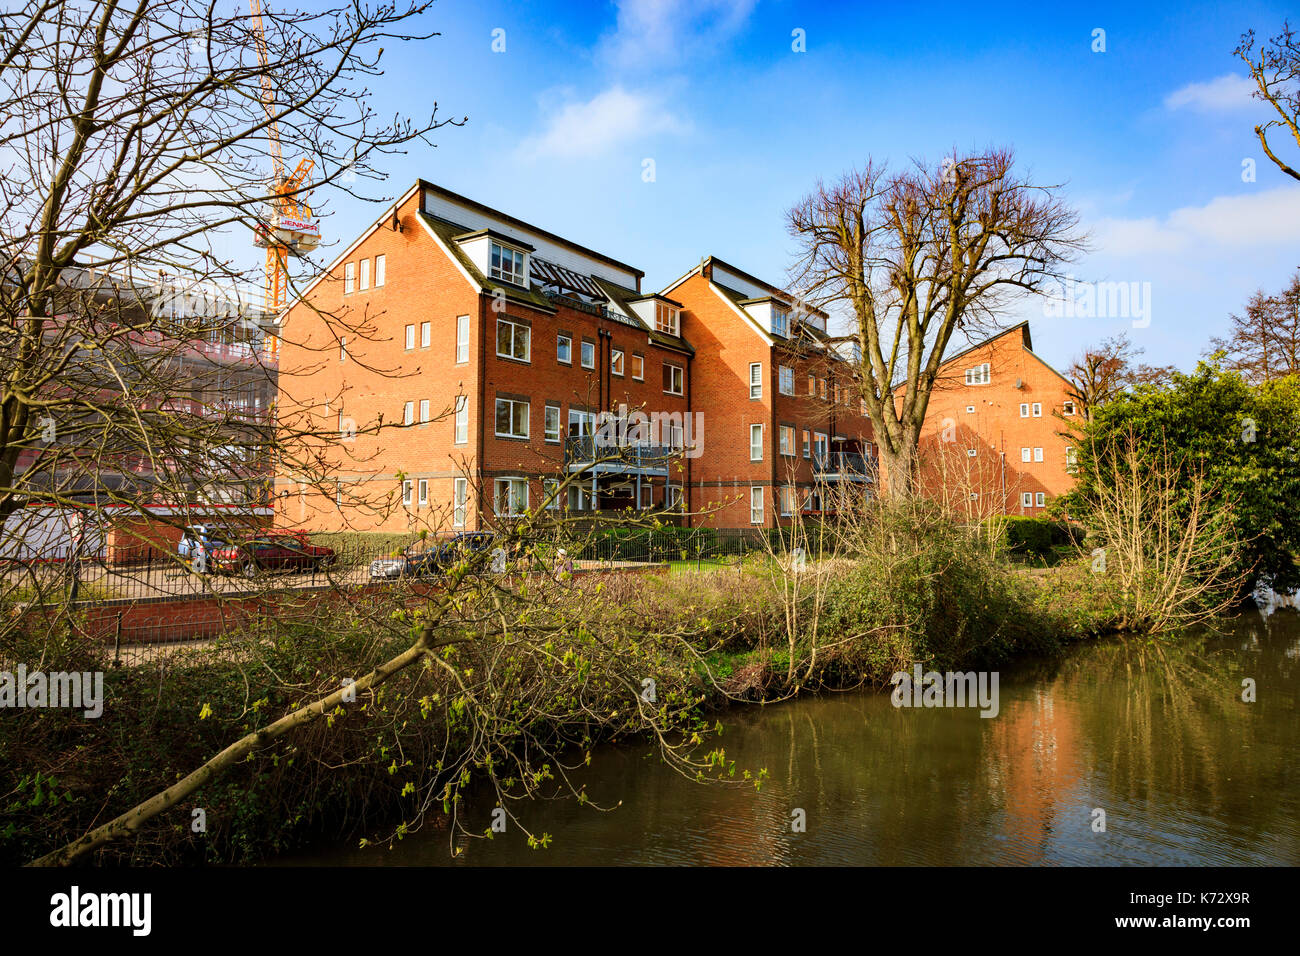 Attractive riverside development along the River Medway in Tonbridge, Kent, UK - Stock Image